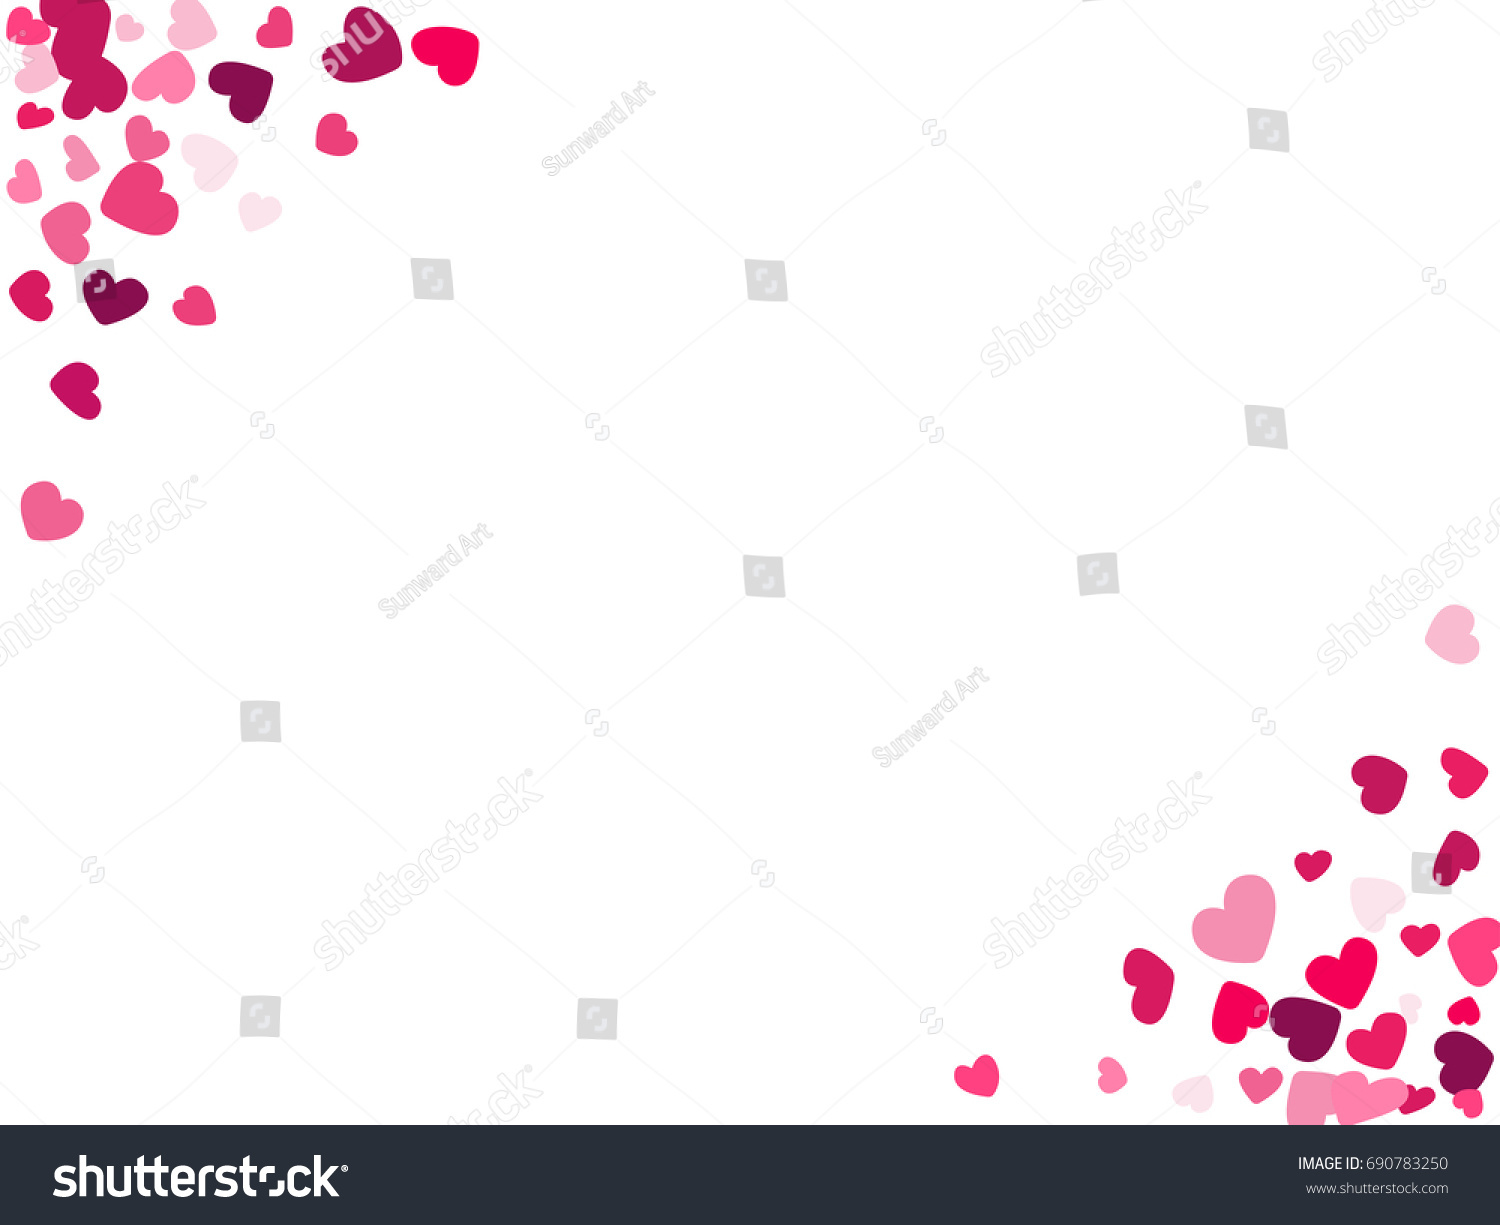 Hearts frame corners vector illustration text stock vector hearts frame corners vector illustration text stock vector 690783250 shutterstock biocorpaavc